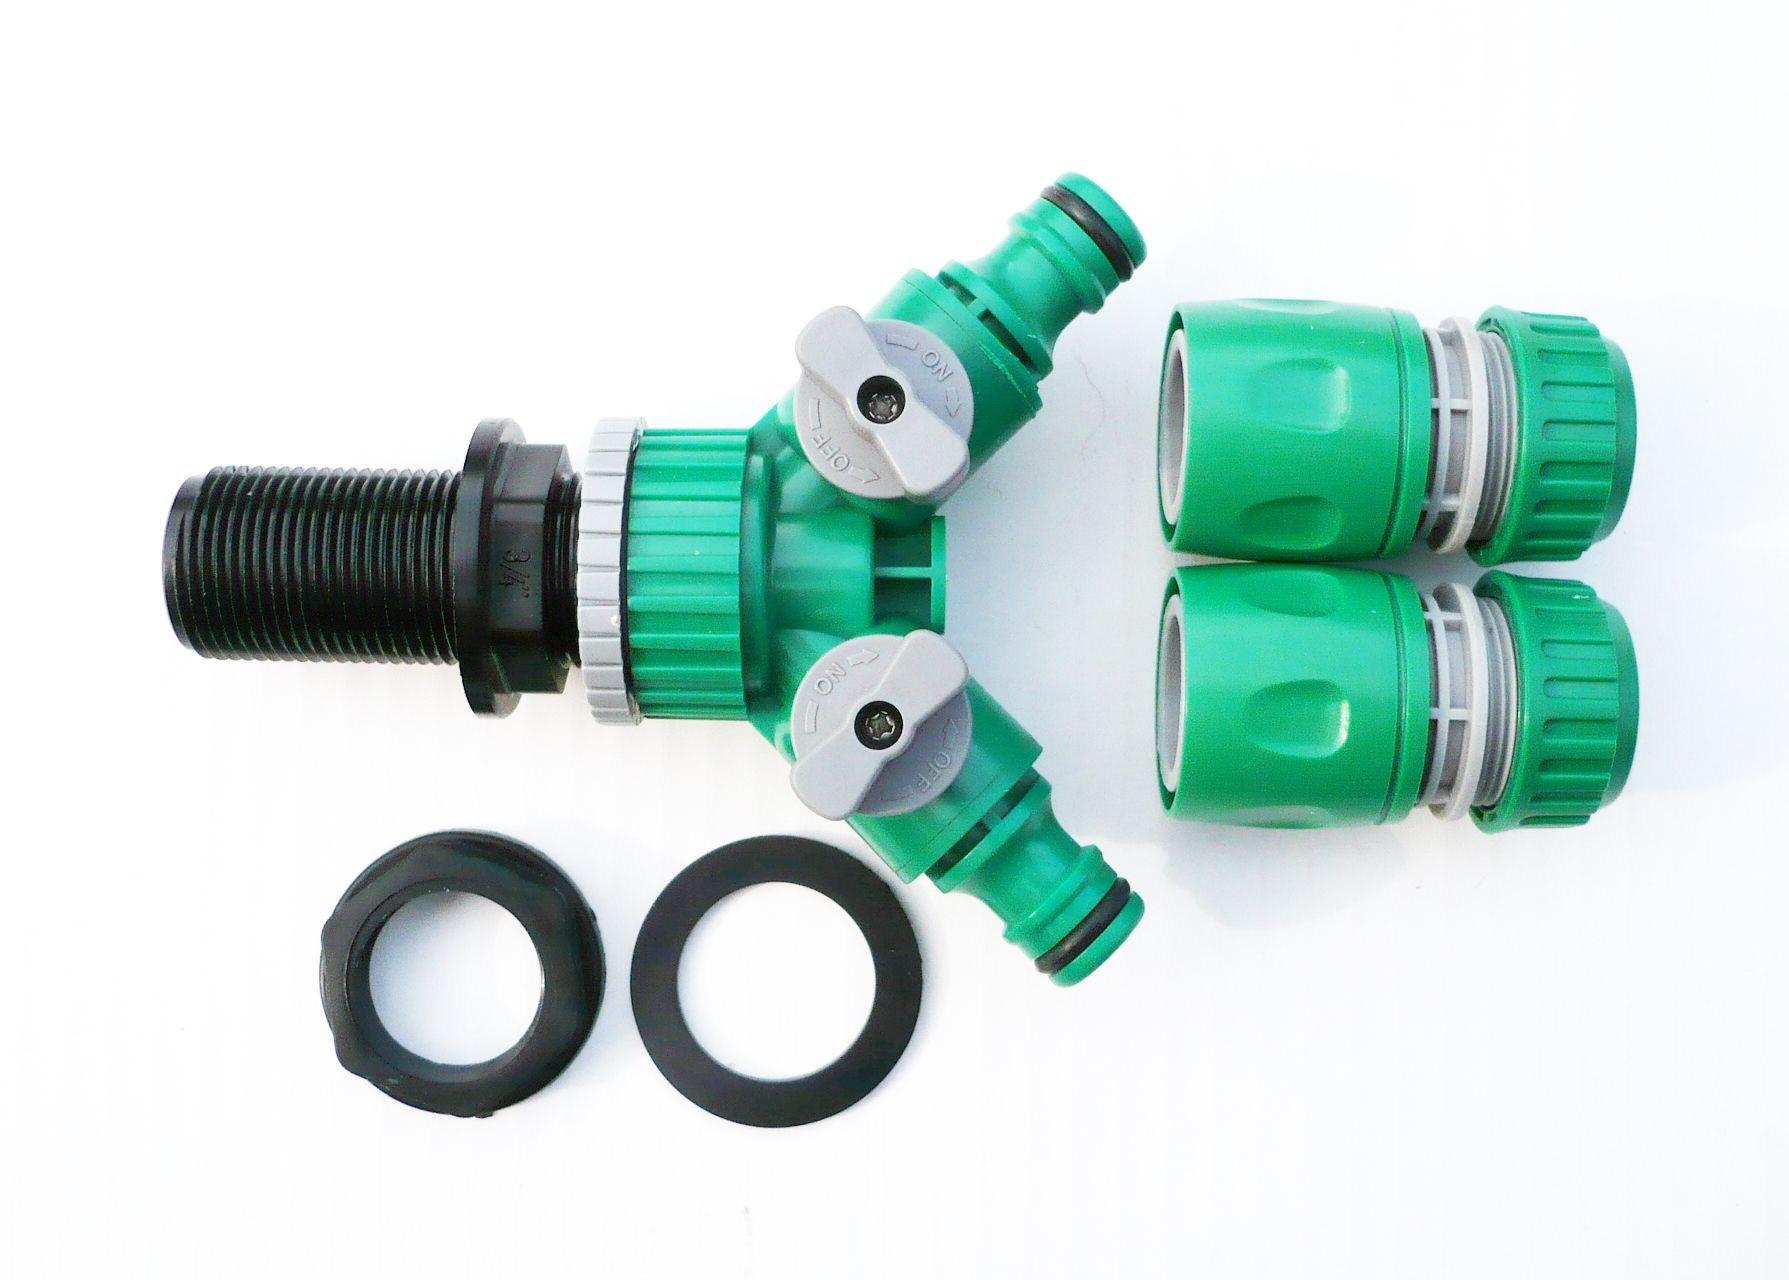 pipe connector spray p fittings connectors blue faucet garden set nozzle hose multi fast ultralight expandable flexible water functional valve